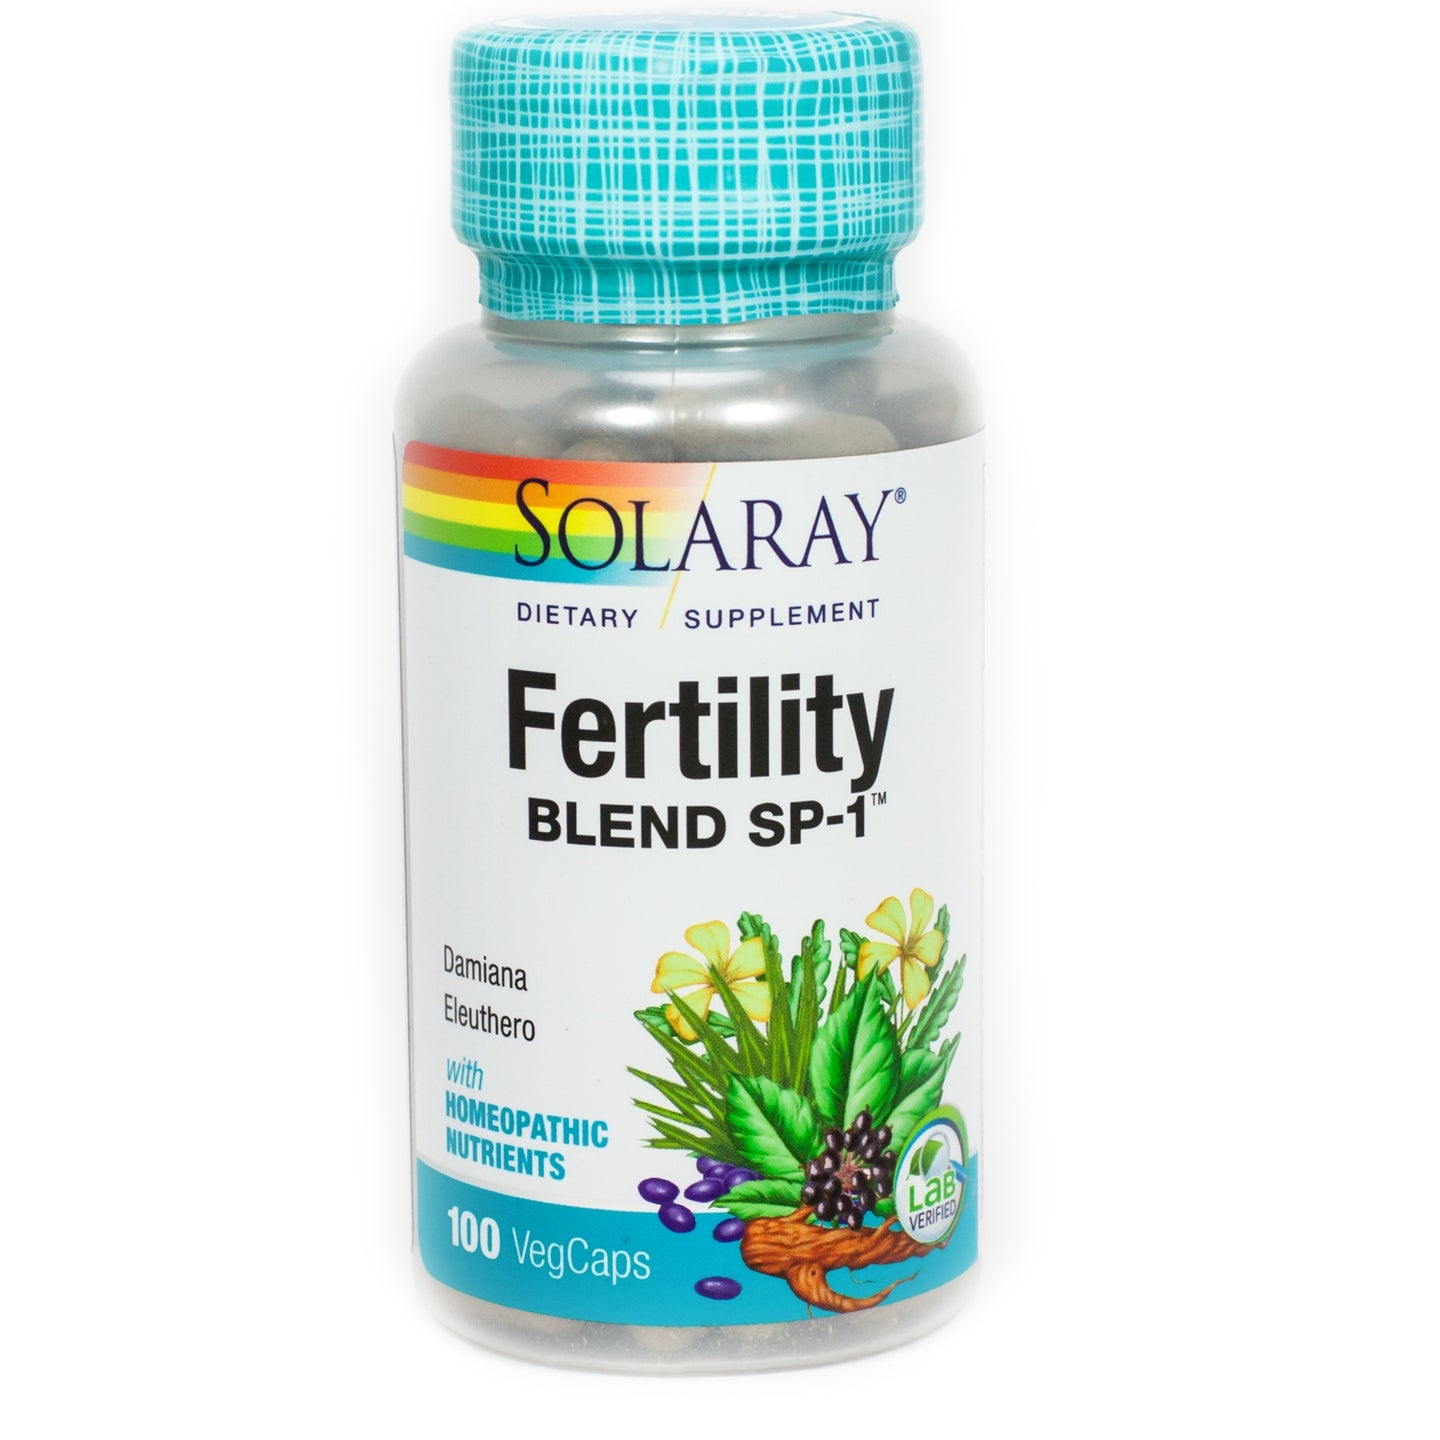 Solaray Fertility Blend SP-1 100 Capsules